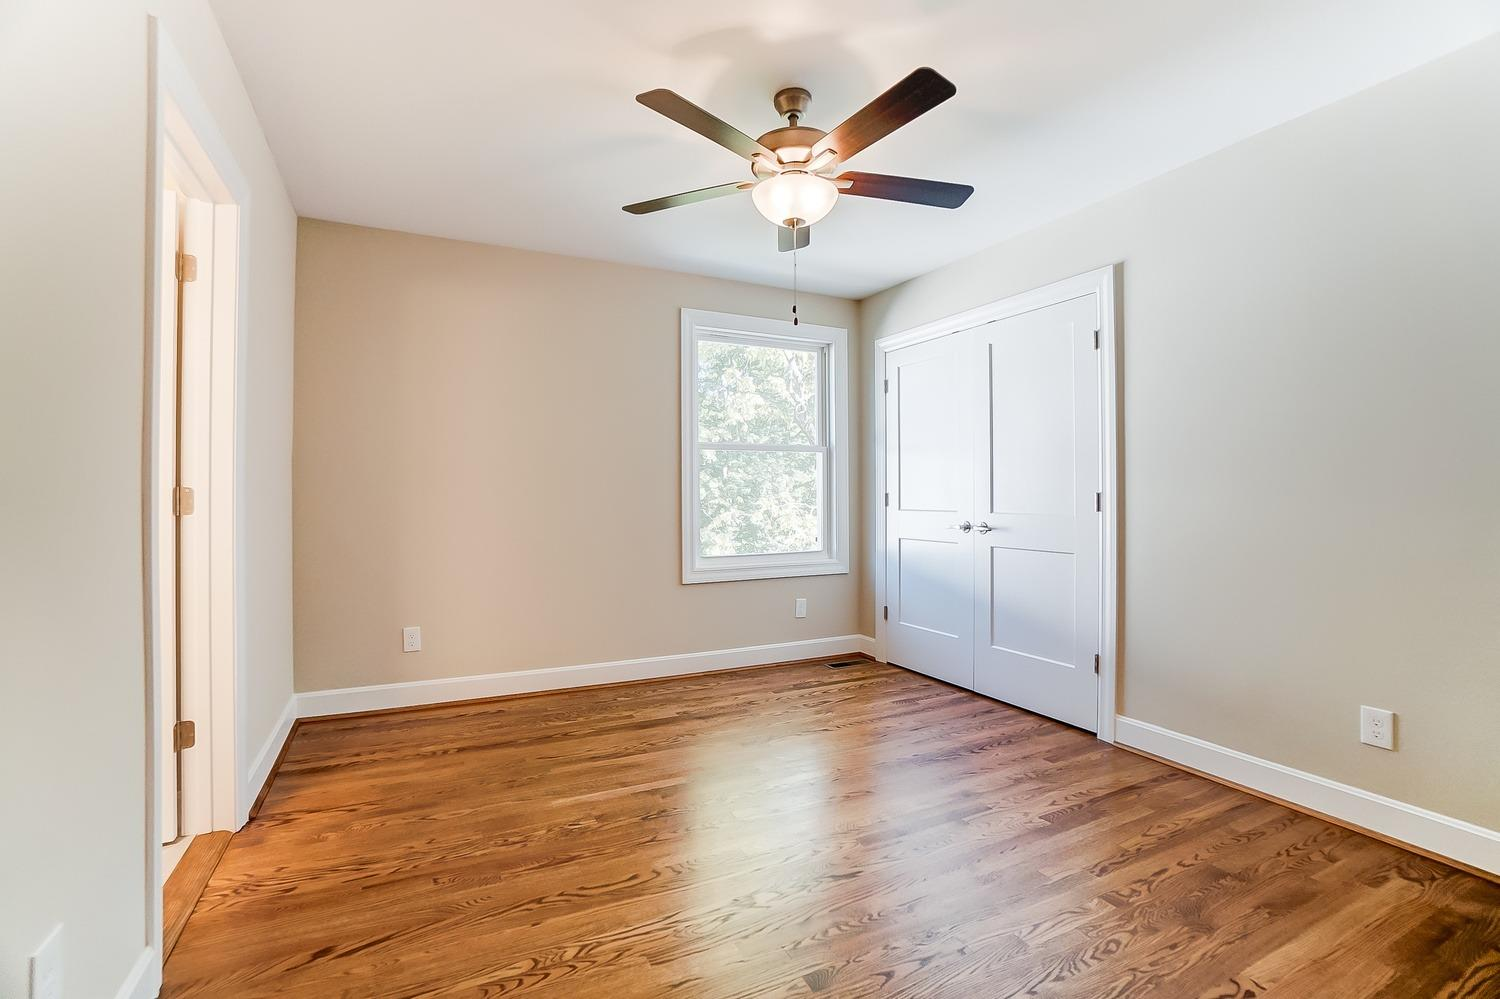 2nd floor, front bedroom (guest/nanny/grandparent/college student/airbnb room) offers generous space, extra large closet, full bath, gleaming hardwood floors.